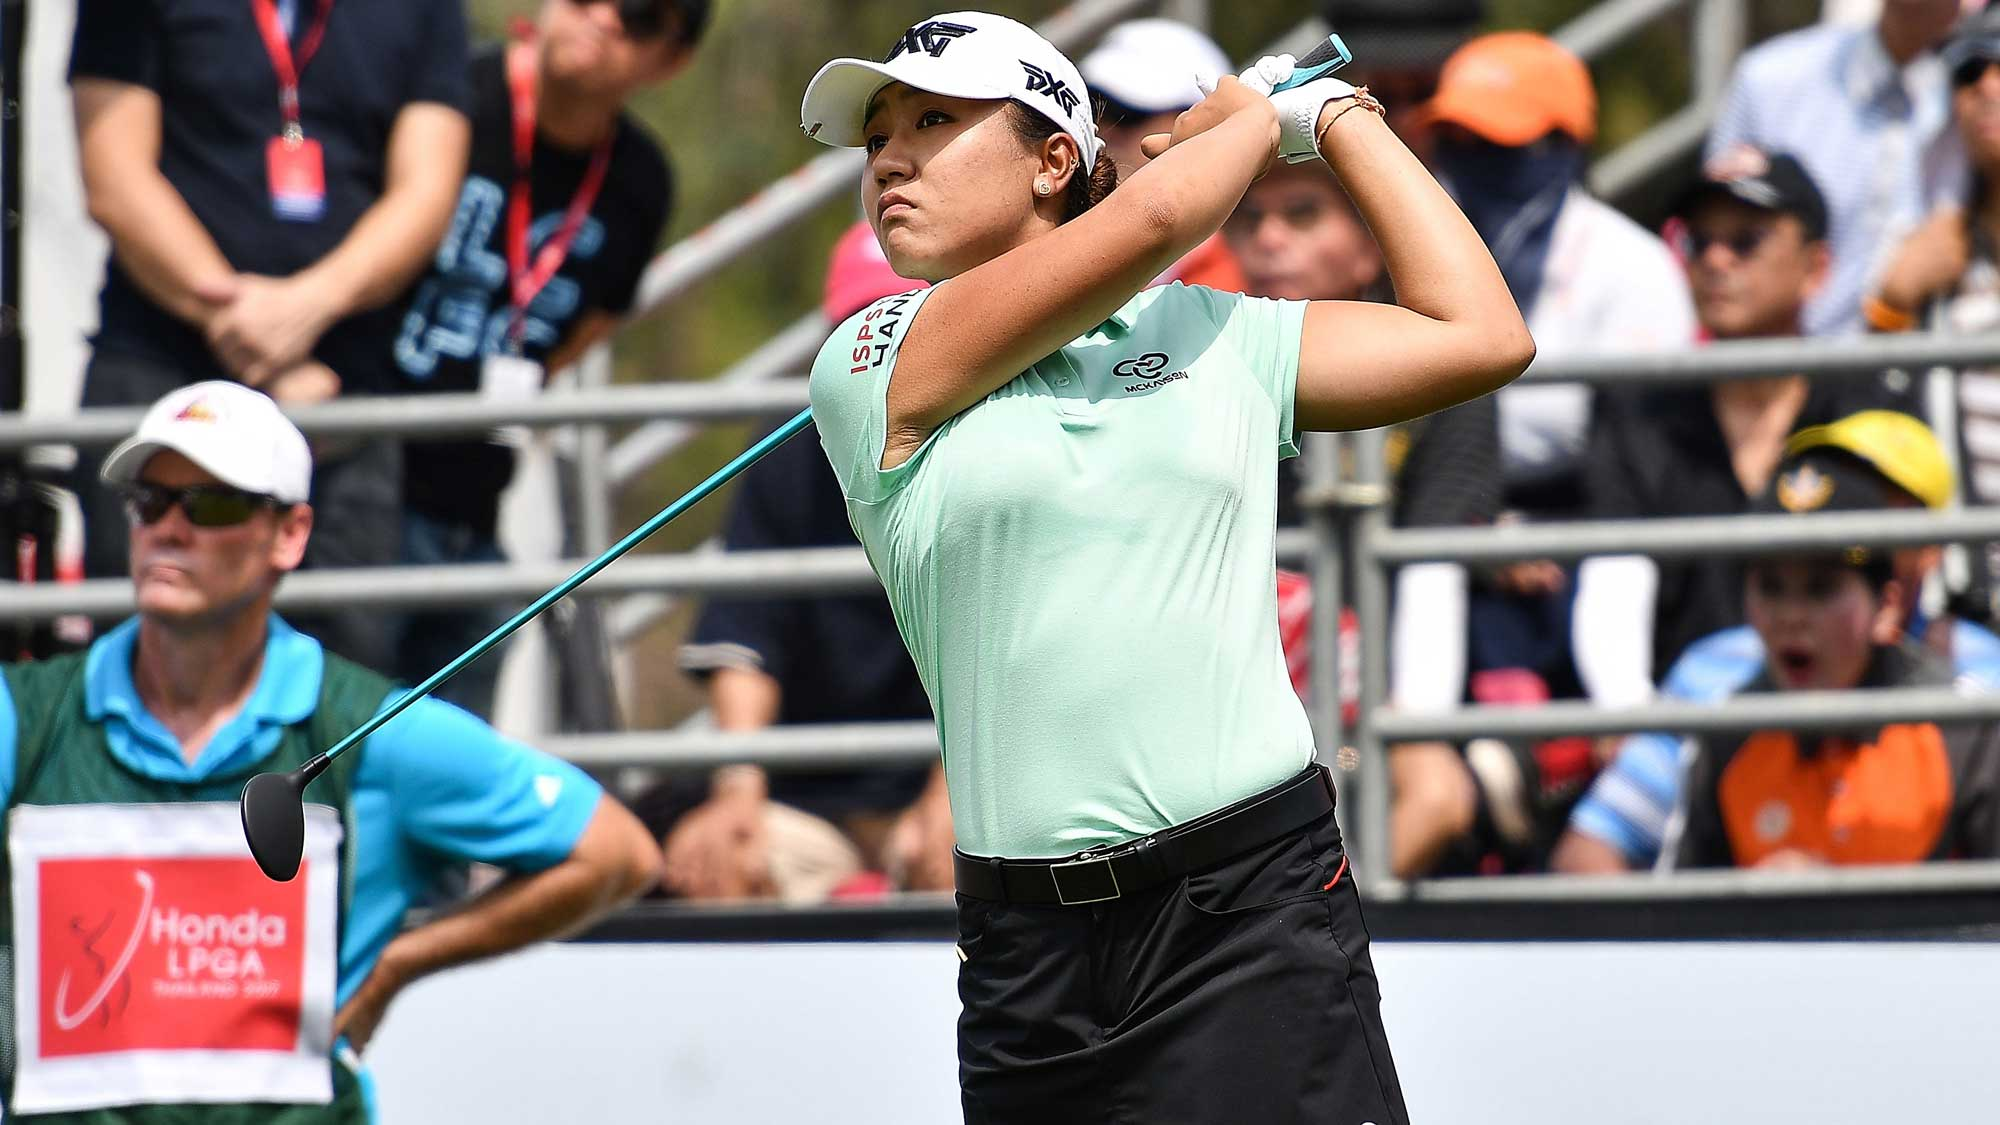 Lydia Ko of New Zealand plays the shot during the final round of Honda LPGA Thailand